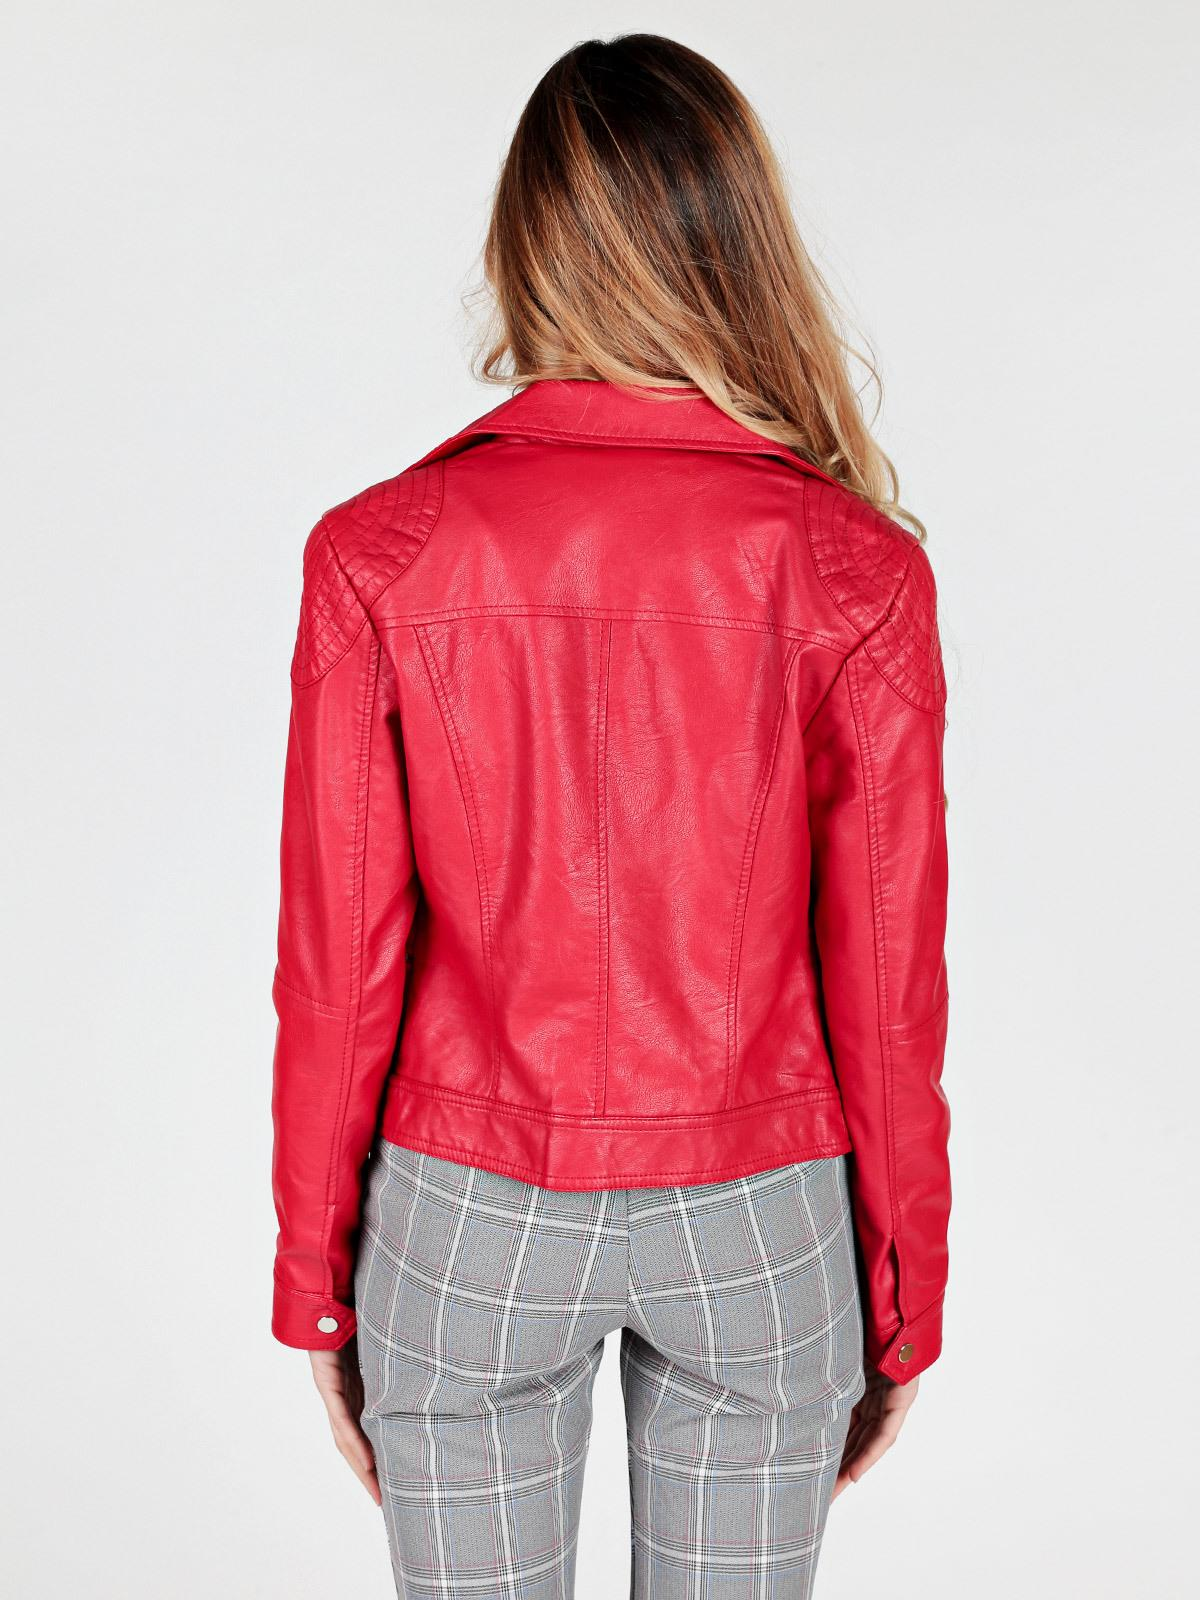 Giacca in ecopelle stile biker rosso solada | MecShopping